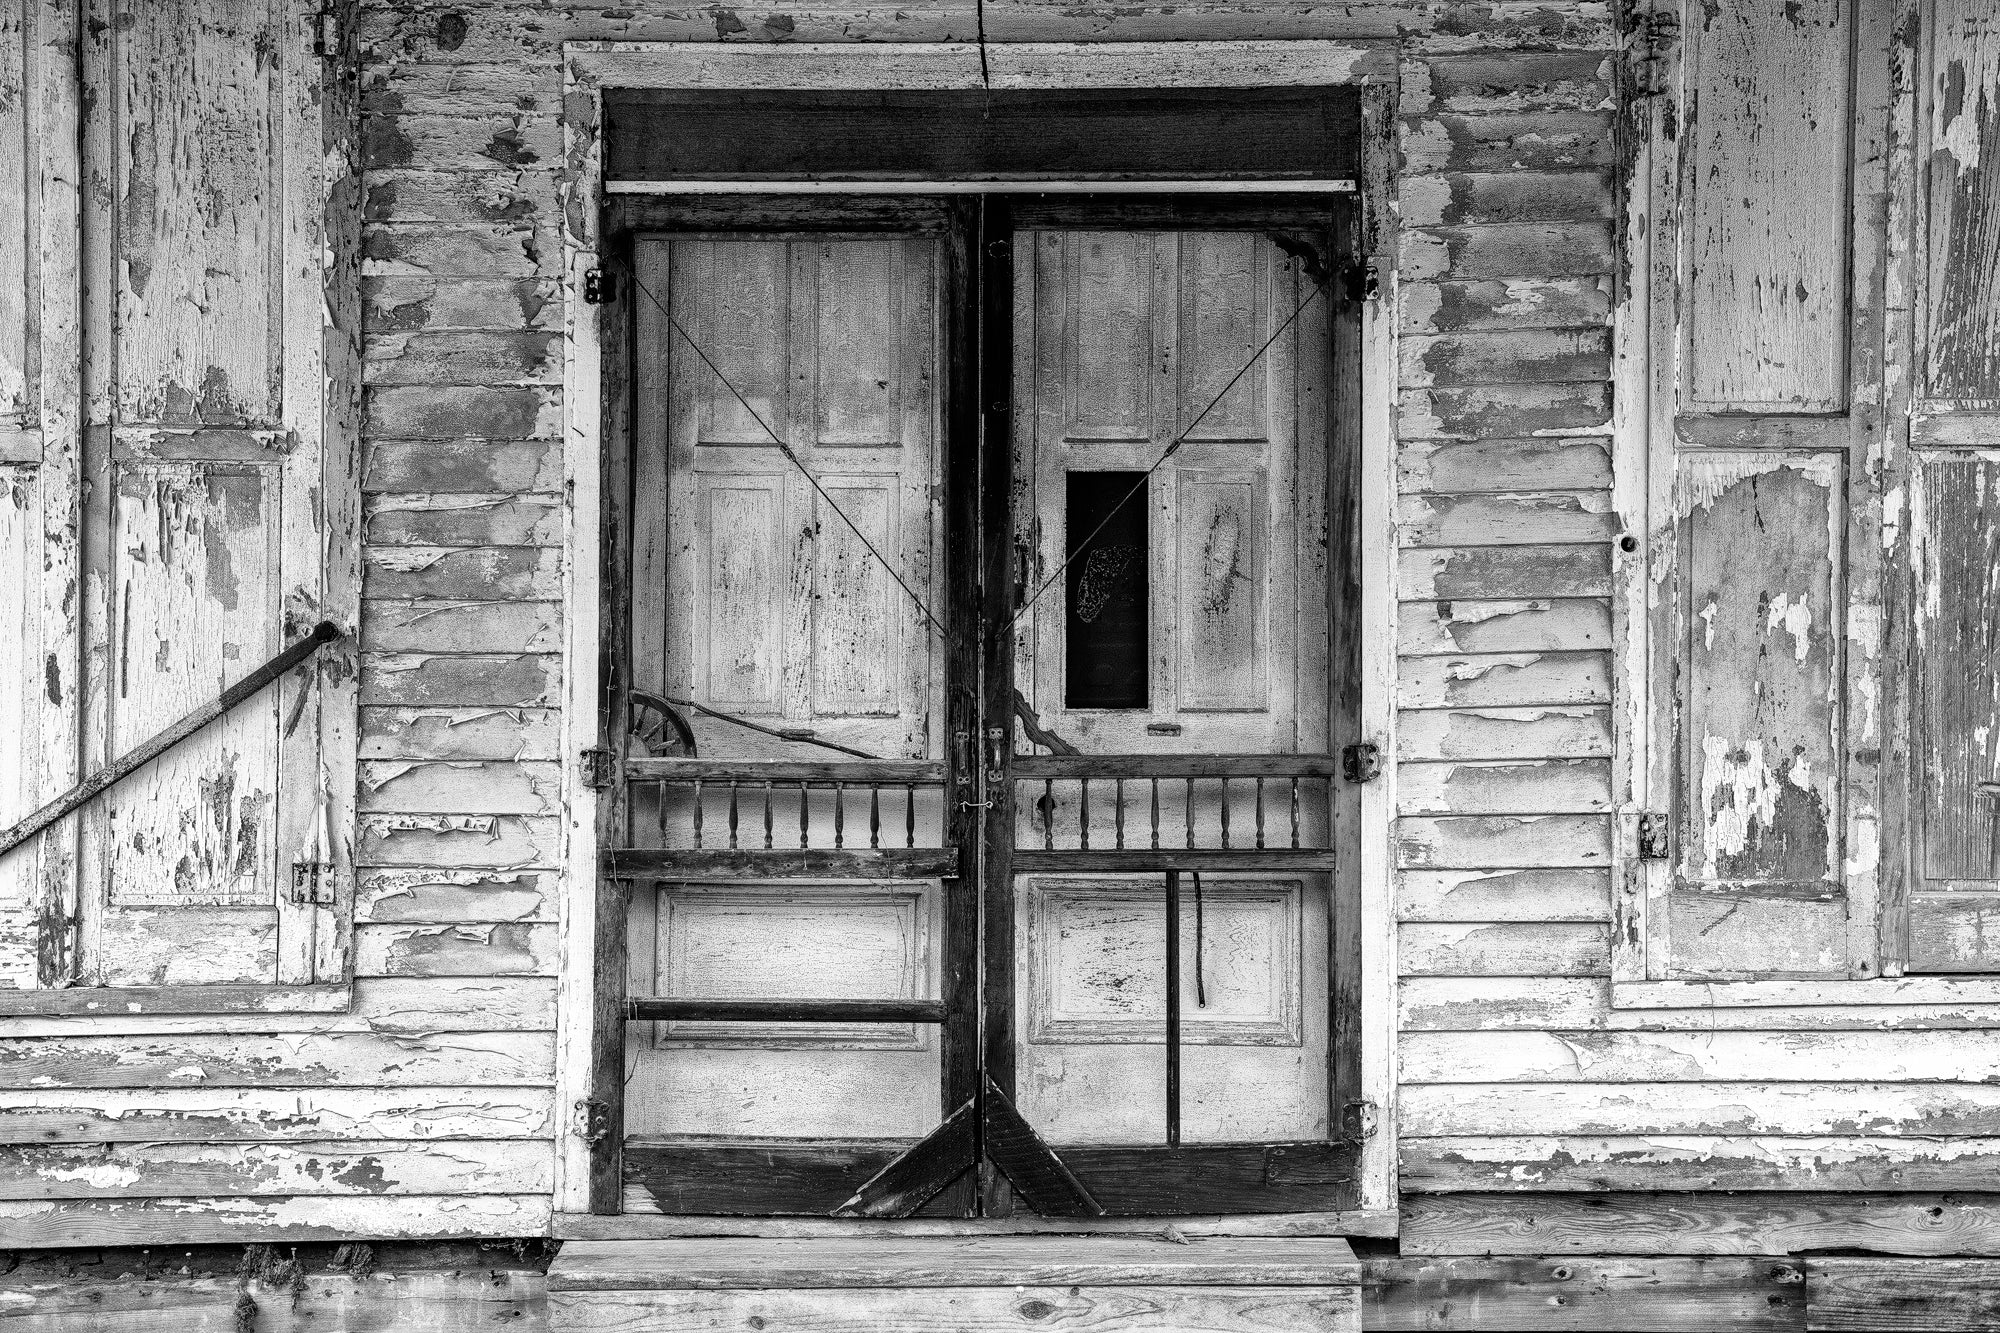 Tattered Screen Doors on an Abandoned Country Store: Black and White Photograph by Keith Dotson. Buy a fine art print here.